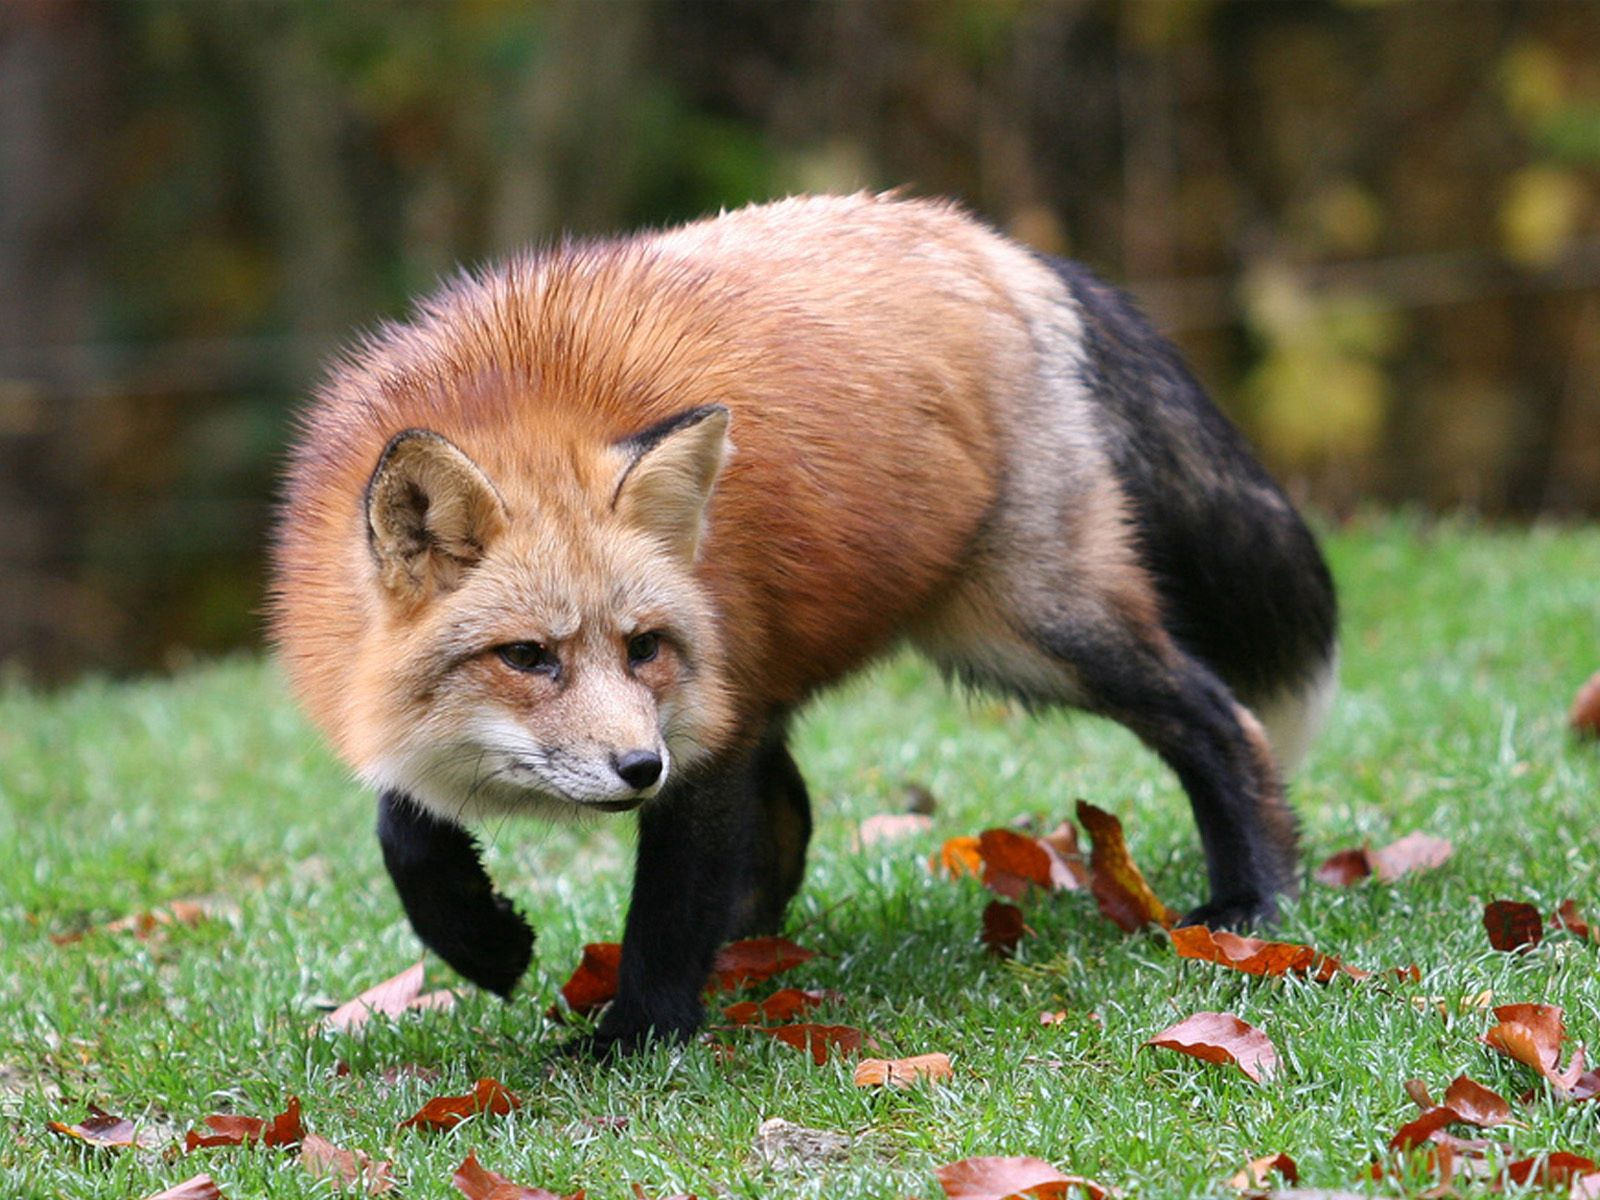 95778 download wallpaper Animals, Fox, Grass, Leaves, Autumn, Alertness, Hunting, Hunt screensavers and pictures for free